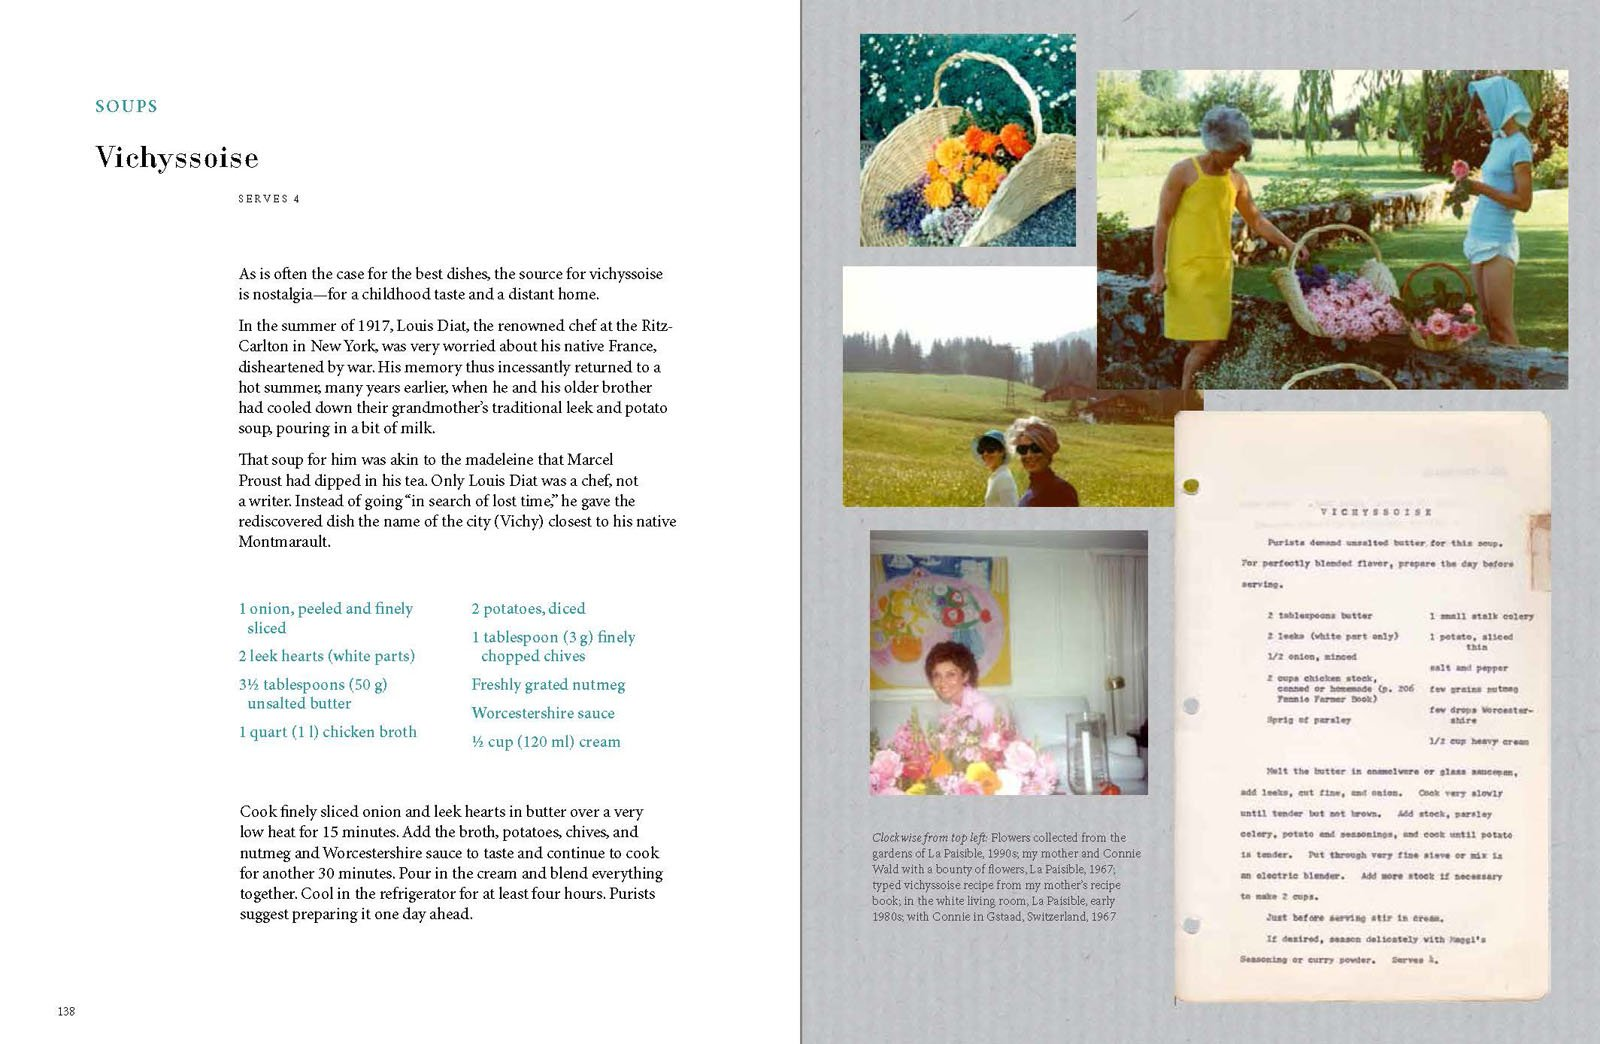 Audrey at Home: Memories of My Mother's Kitchen: Luca Dotti: 9780062284709: Amazon.com: Books